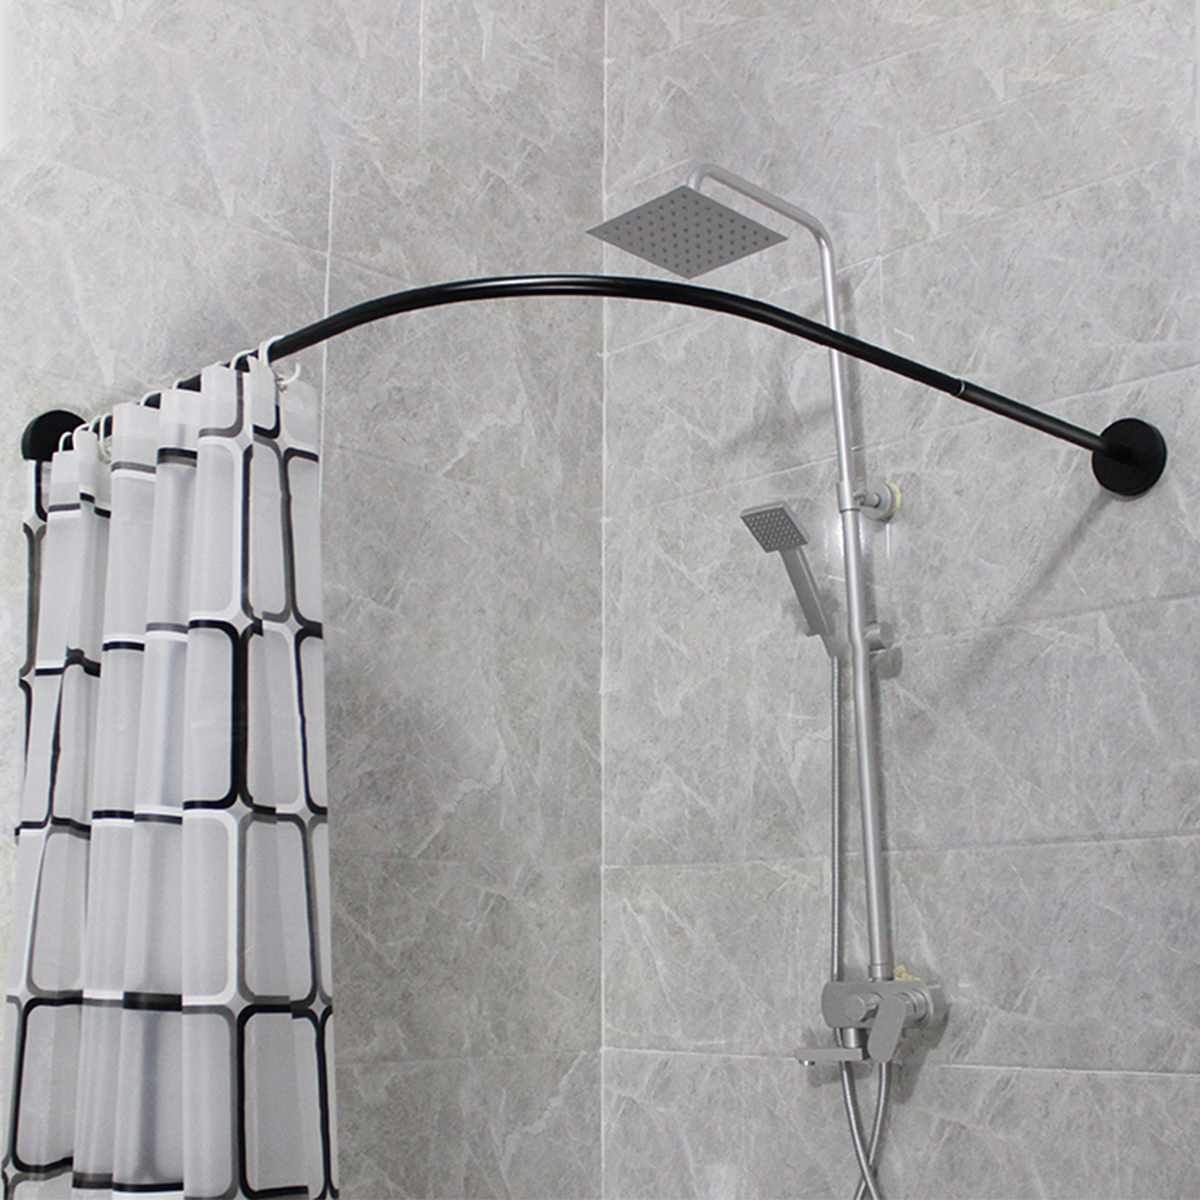 Modern Stainless Steel Extendable Corner Curved Shower Curtain Rod Corner Shower Curtain Rod Shower Curtain Rods Corner Shower